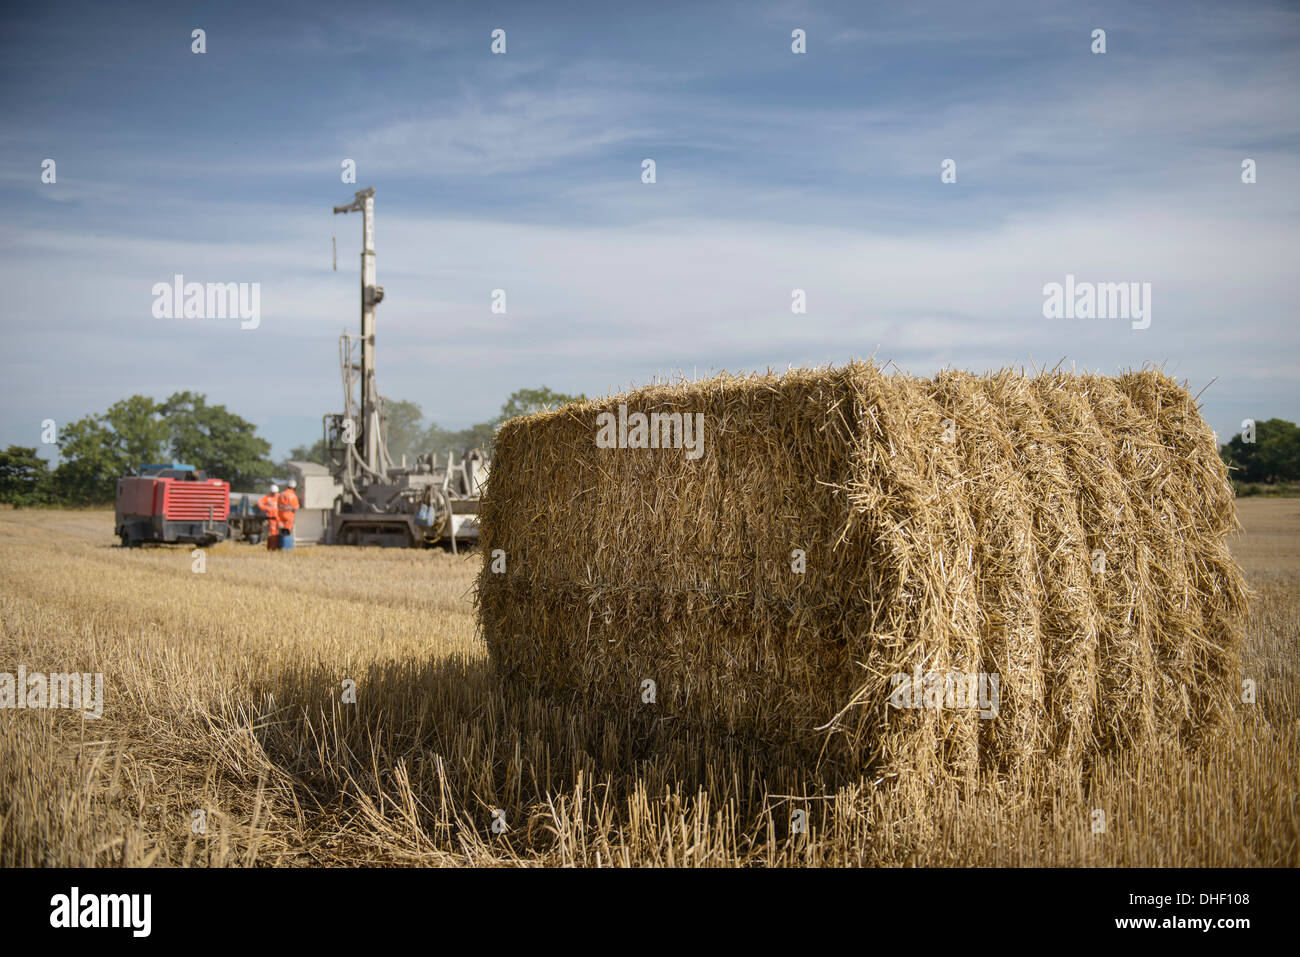 Drilling rig in field with hay bale in foreground - Stock Image